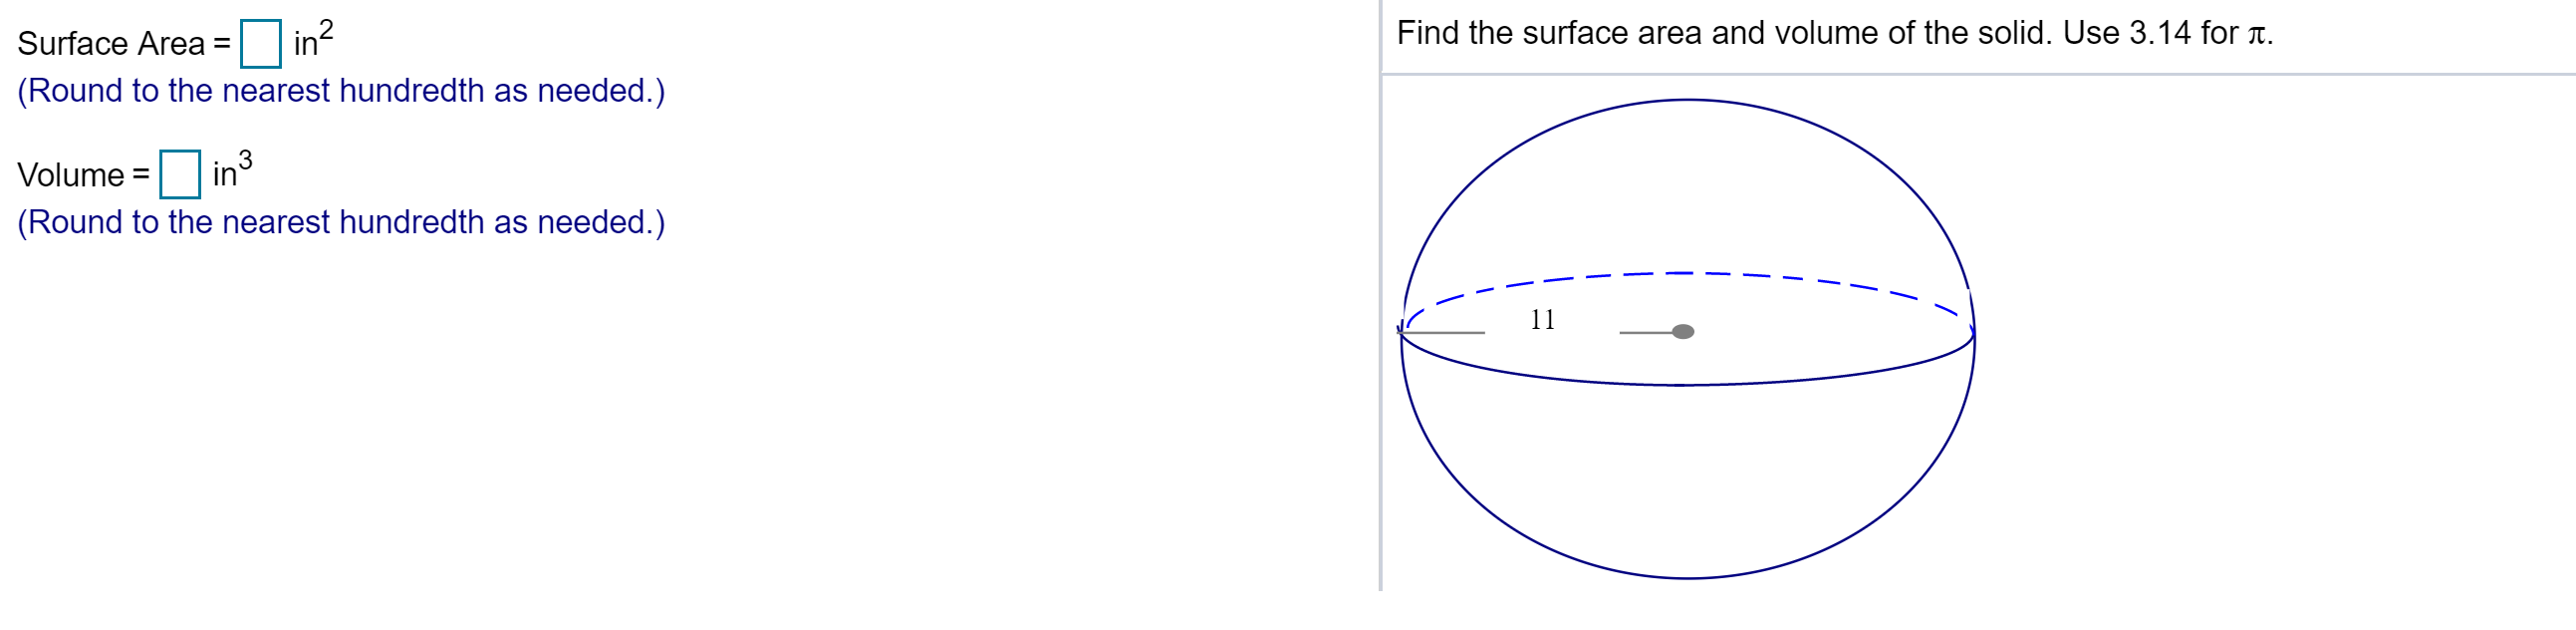 in? Find the surface area and volume of the solid. Use 3.14 for T. Surface Area (Round to the nearest hundredth as needed.) 3 in Volume = (Round to the nearest hundredth as needed.)